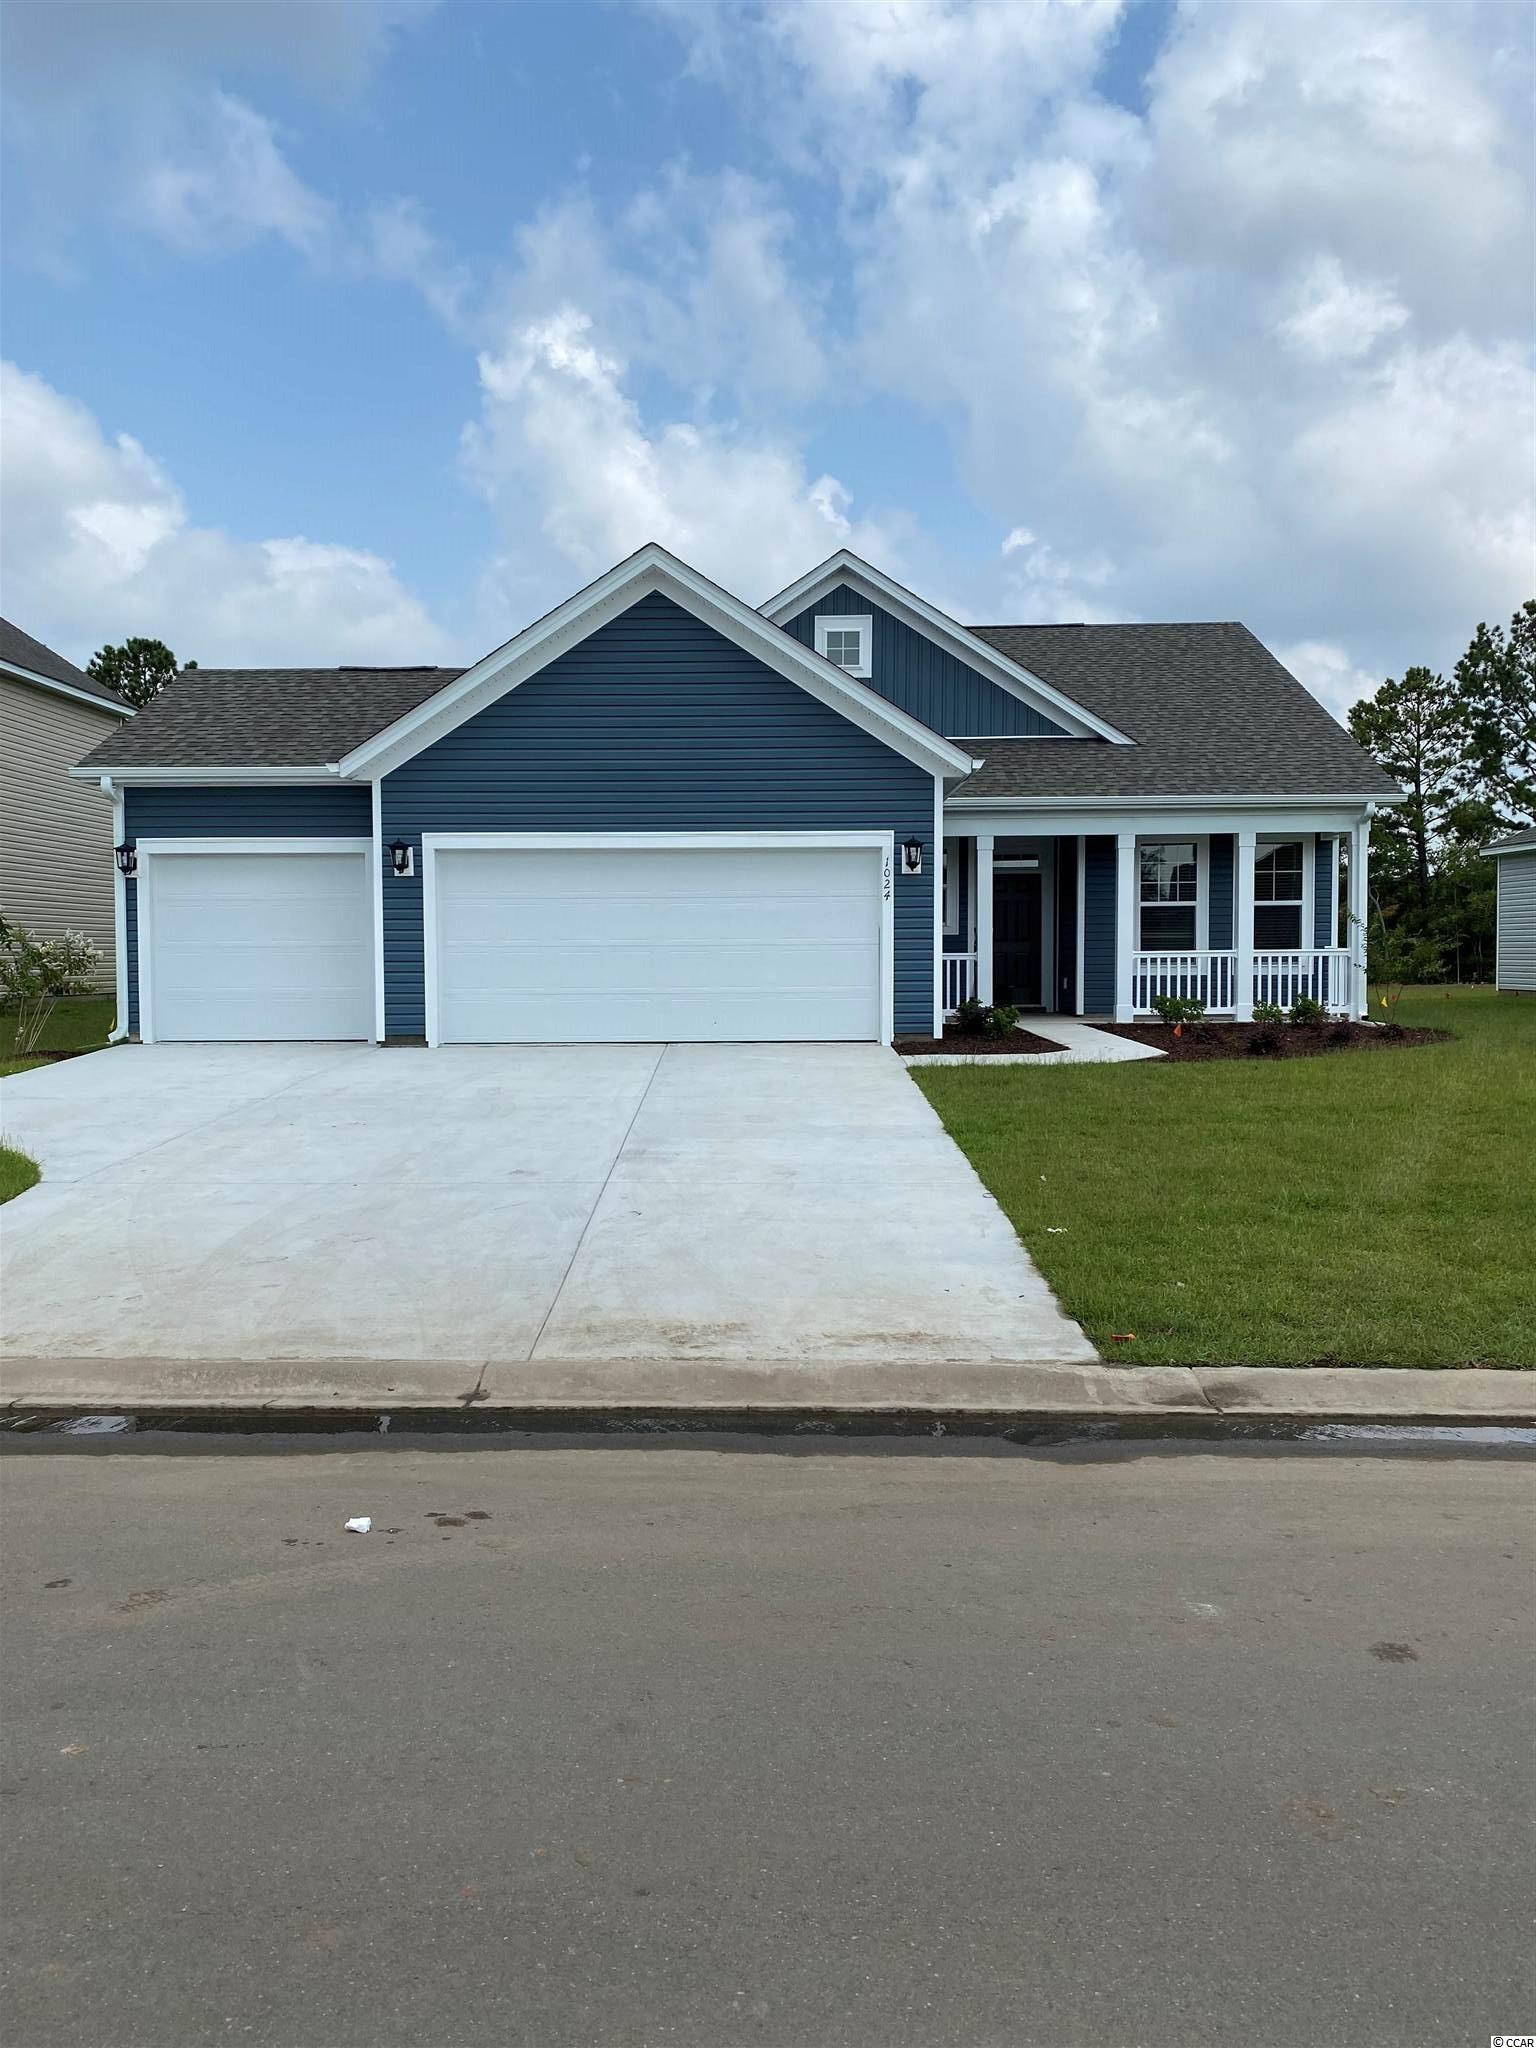 Camden model features three bedrooms, two baths and a Carolina room. gas range, upgraded cabinets with quartz counters in this oversized kitchen which features a huge counter for bar seating. Mud room & separate laundry room off garage. Relax in your Carolina room or covered porch. Energystar certified homes only! Each home is rated and tested & you receive a HERS rating & certificate for your home. R-15/R-38 insulation. Externally vented microwaves for the cook in your family. Tyvek full system used for house wrap, make sure you protect your investment with the proper moisture management. Save on utility bills for the life of your home. Home is under construction, photos are the model home. This home has most of the same upgrades